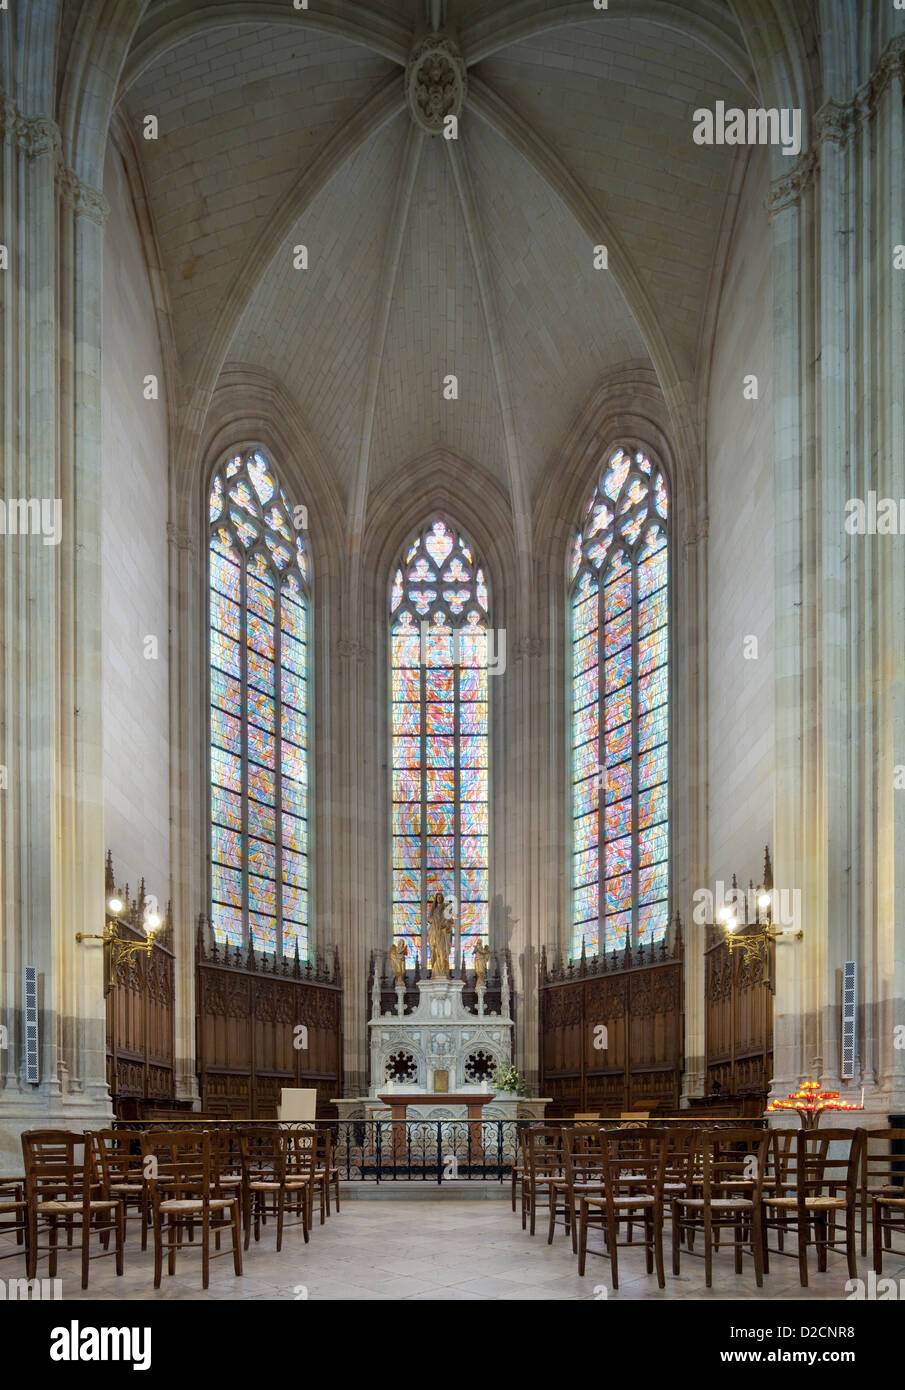 nantes france interior of the saint pierre cathedral of nantes stock photo royalty free image. Black Bedroom Furniture Sets. Home Design Ideas